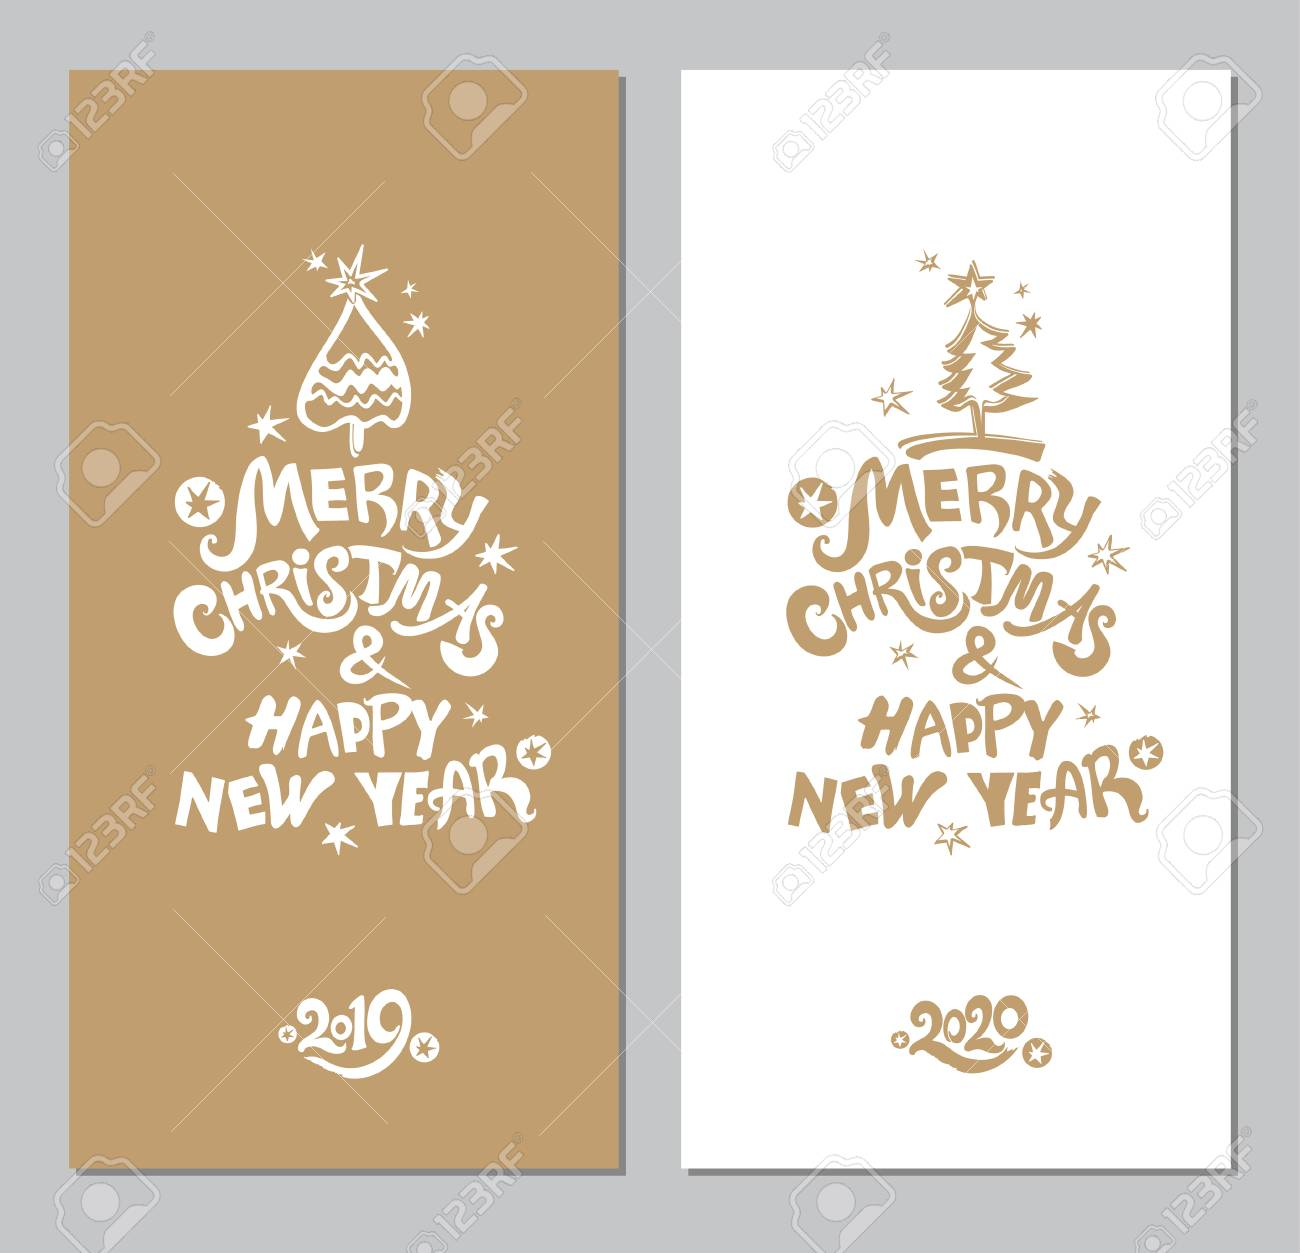 New Christmas Music 2020 Merry Christmas & Happy New Year! Xmas Tree And Snow. Vector